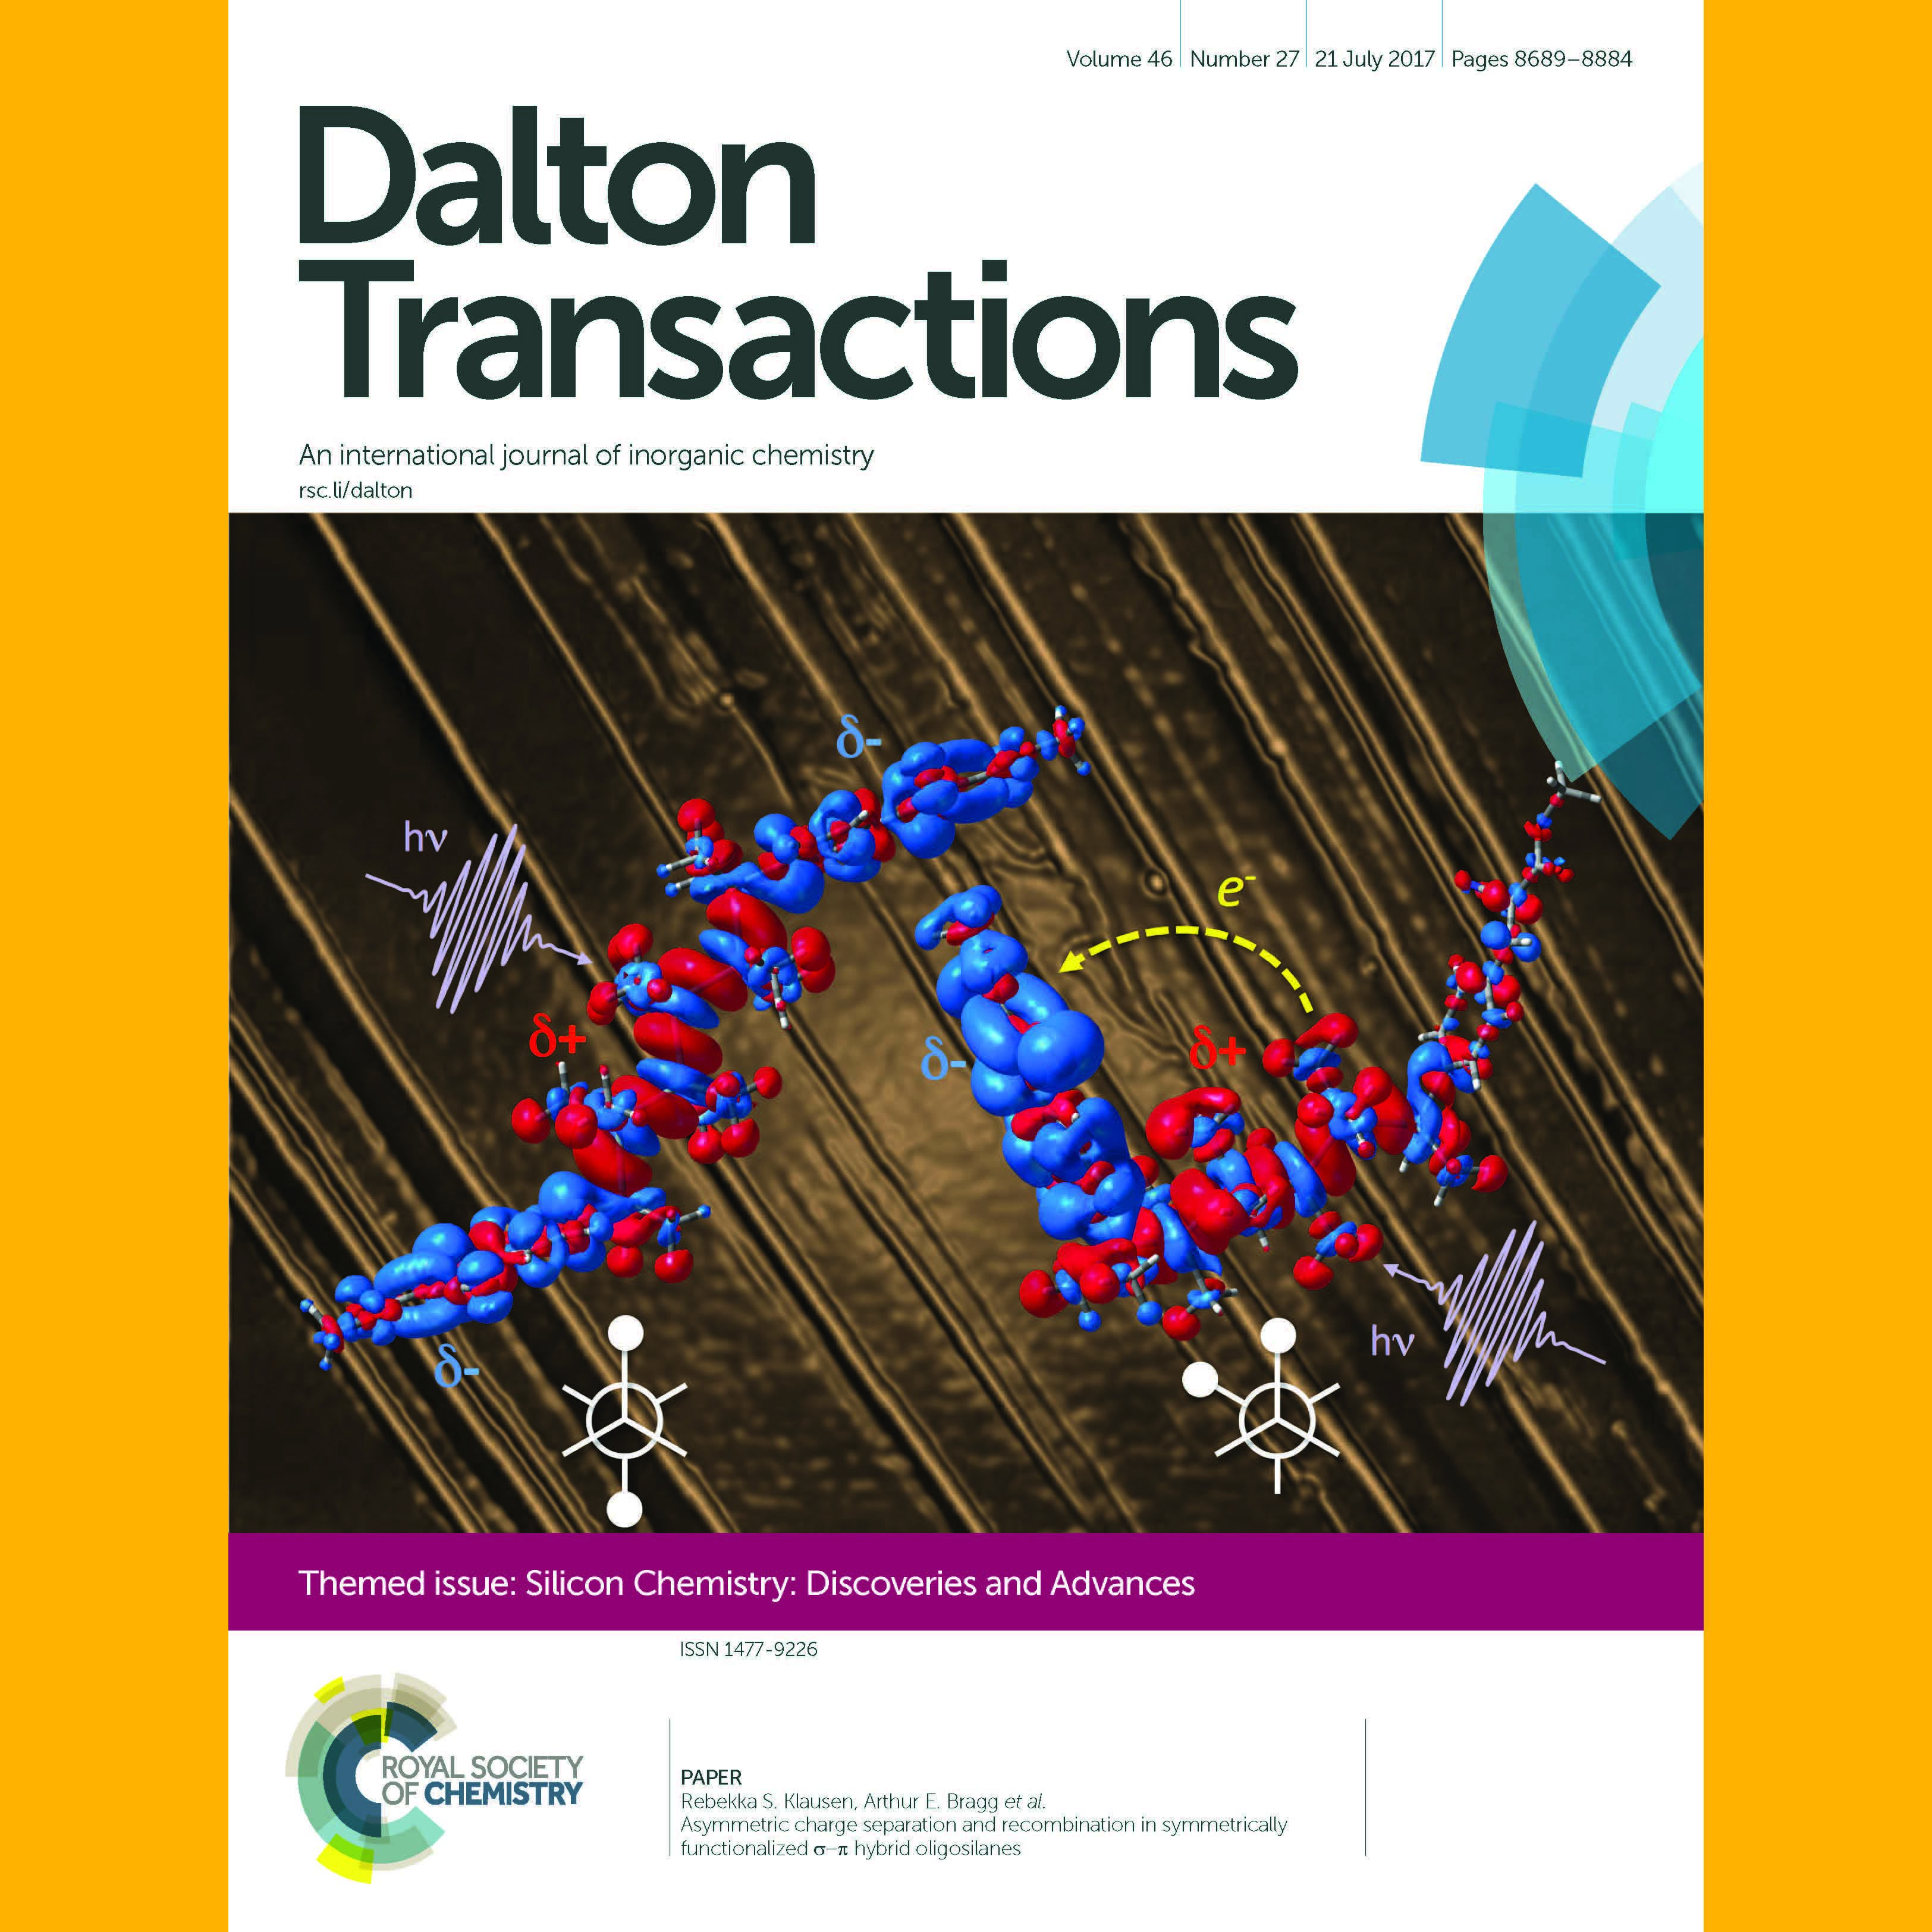 Bragg and Klausen Labs Featured on Dalton Transactions Cover